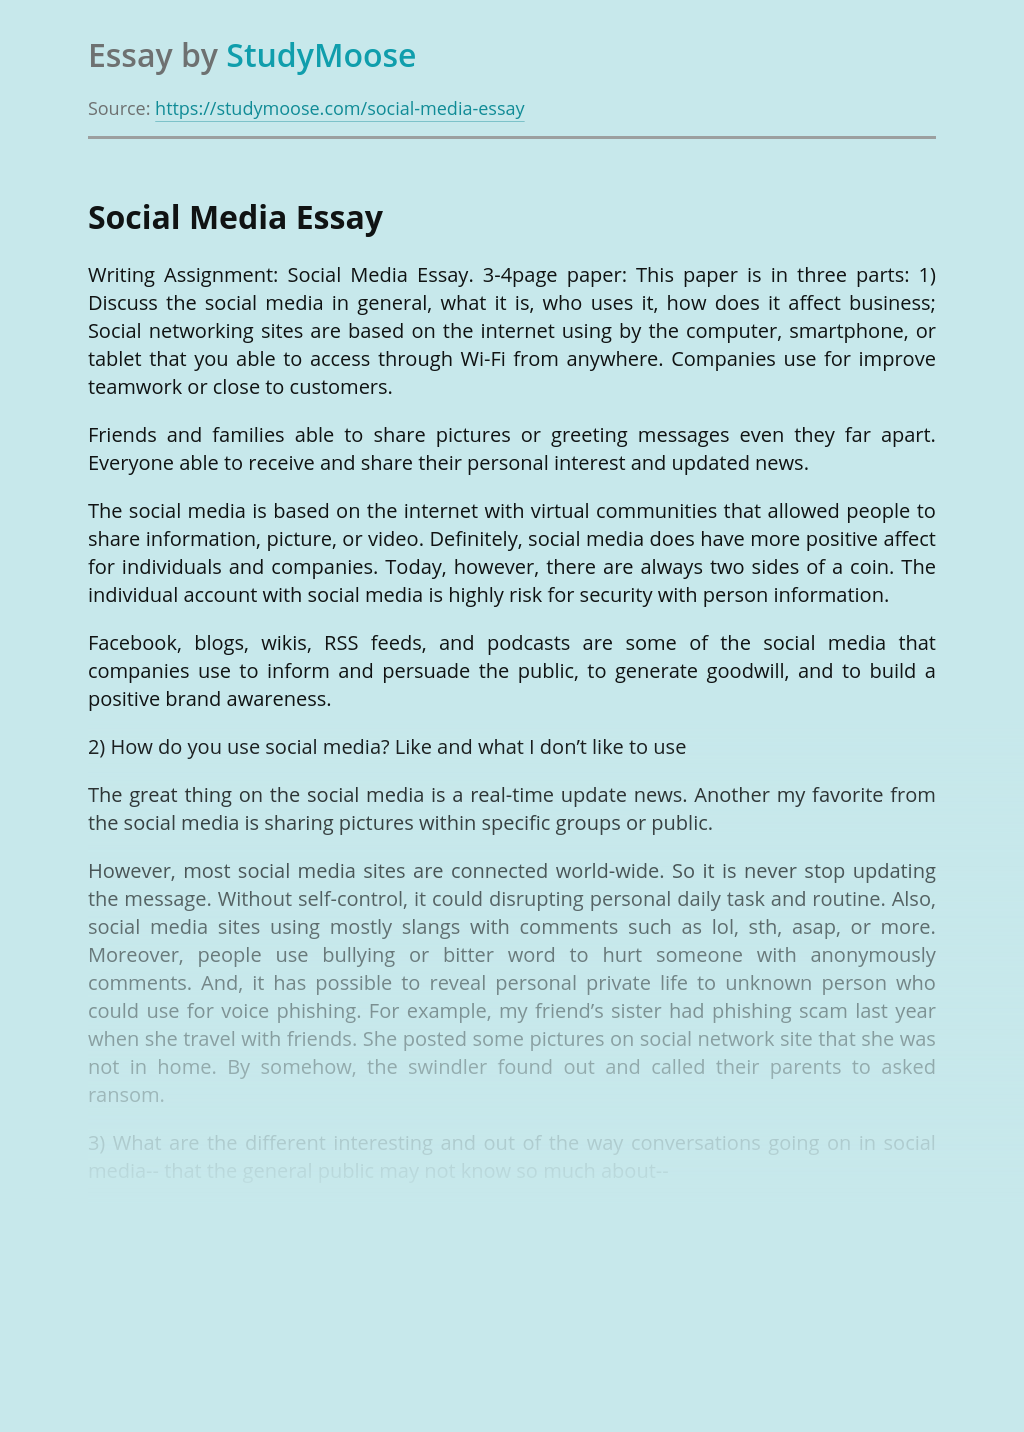 Social Media for Business Issues